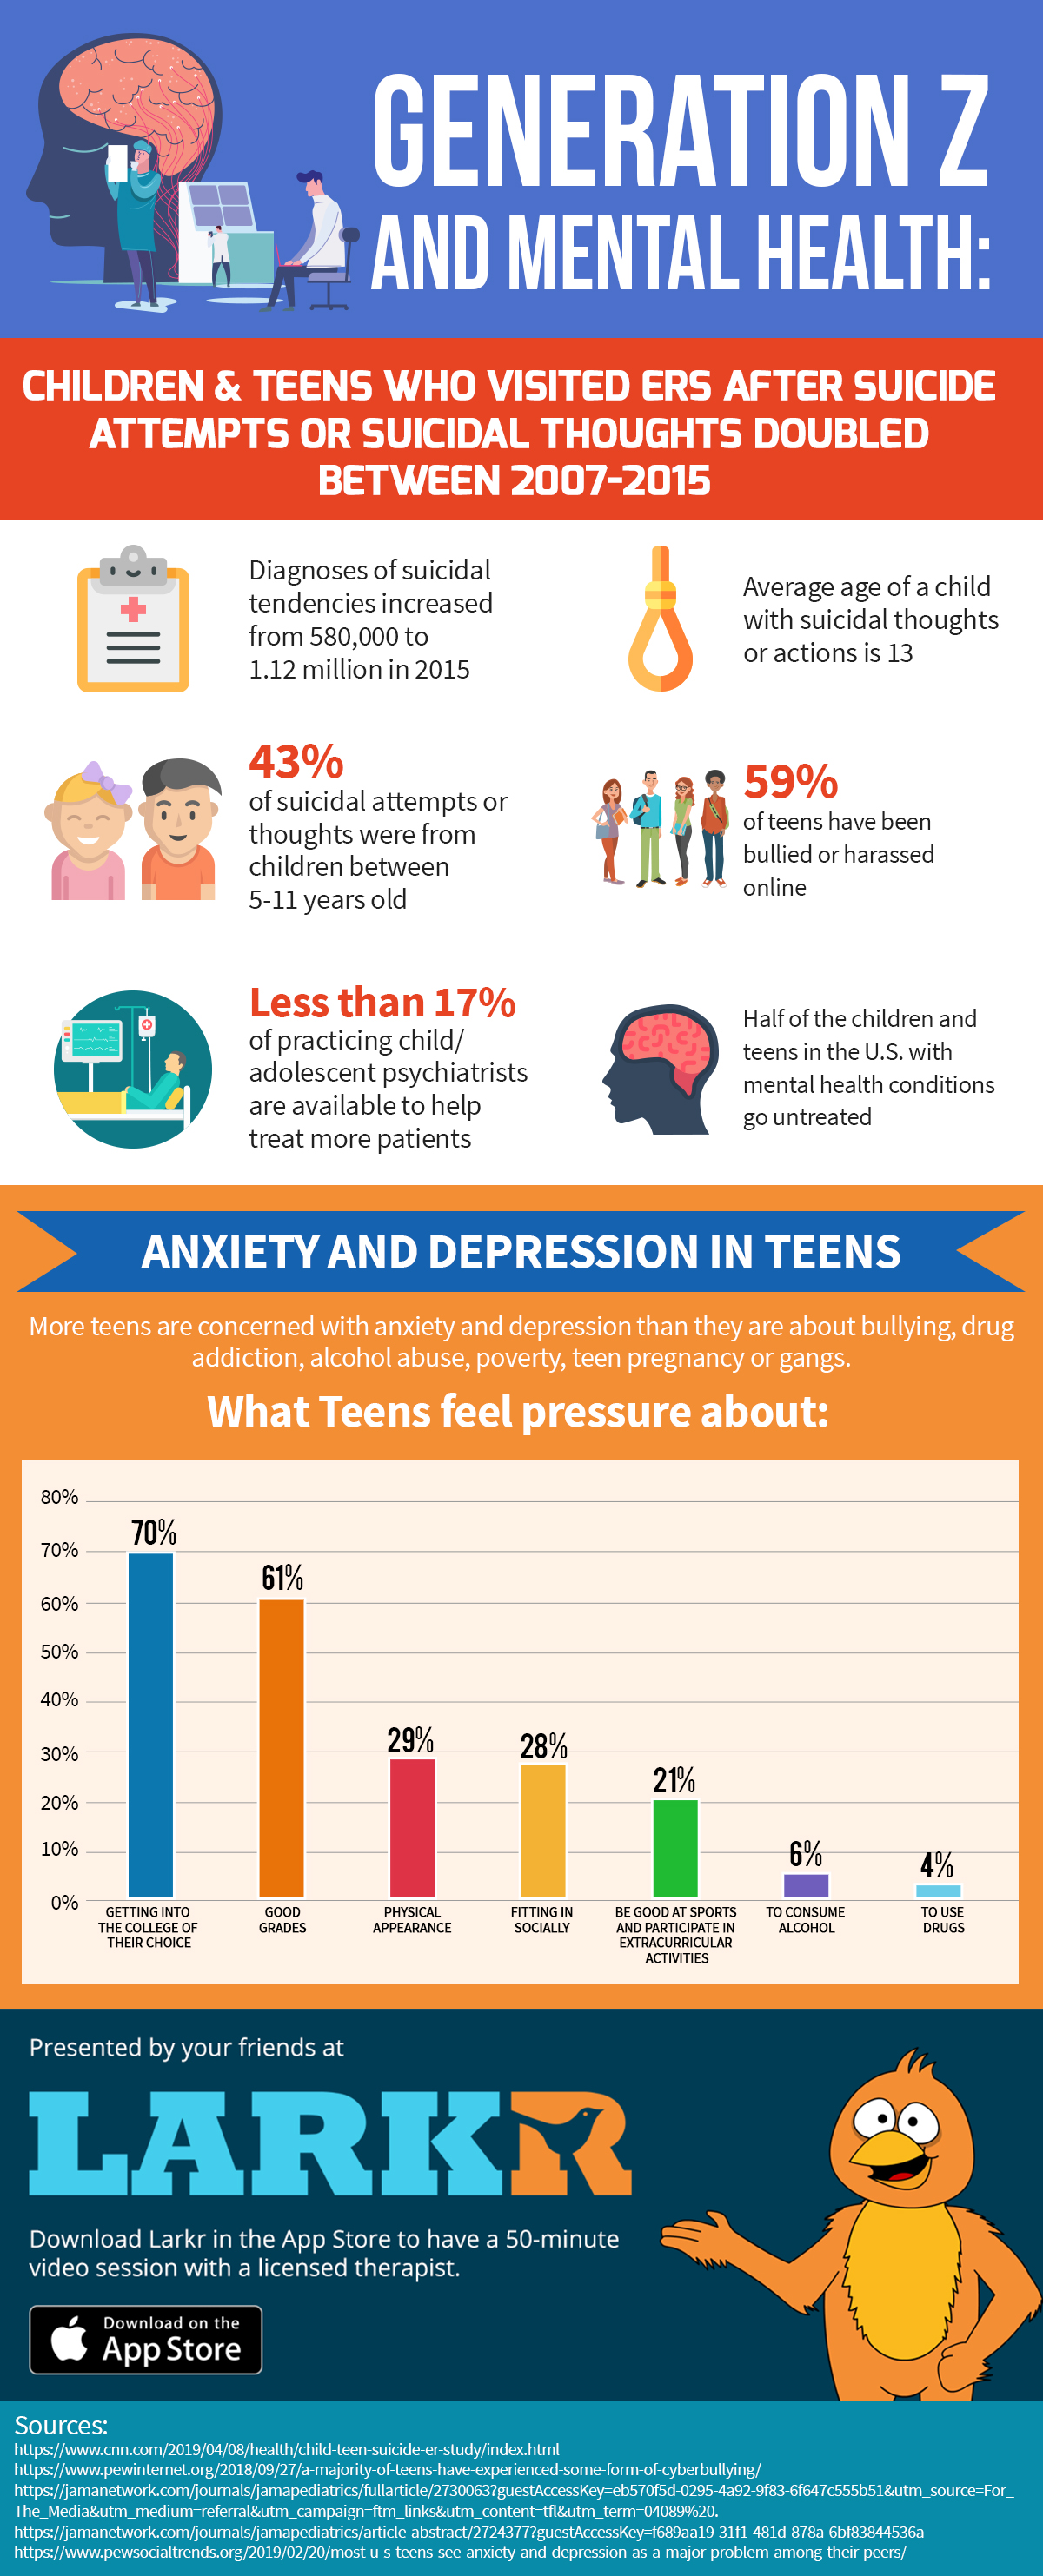 Generation Z and Mental Health